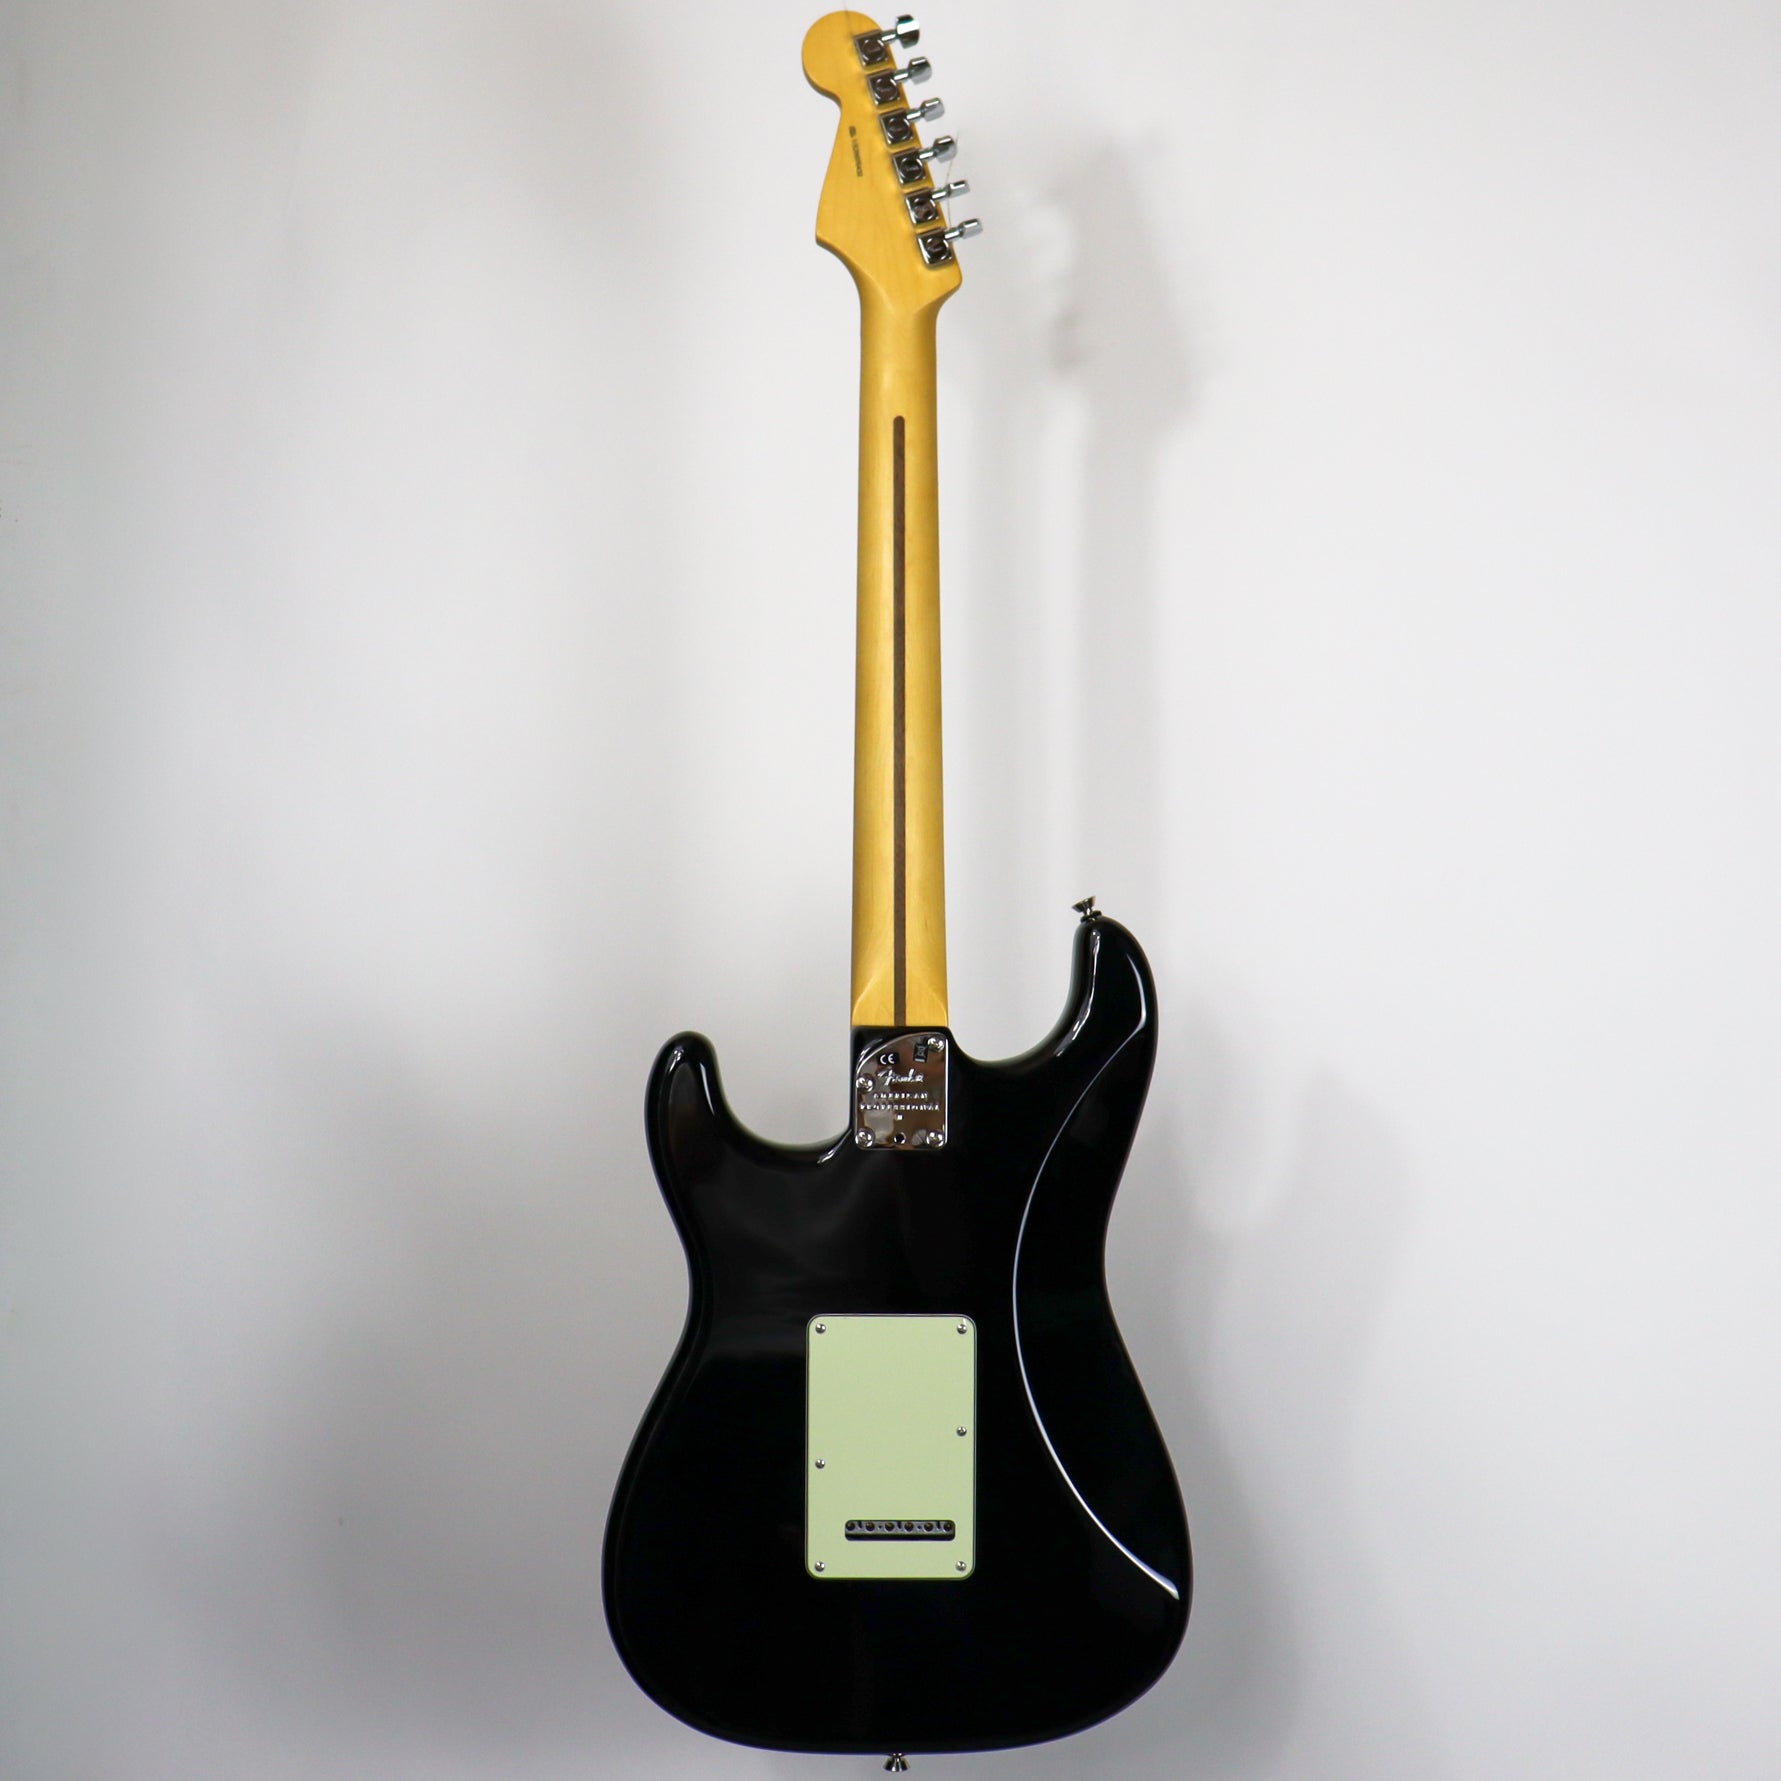 Fender American Professional II Stratocaster Maple Neck, Black